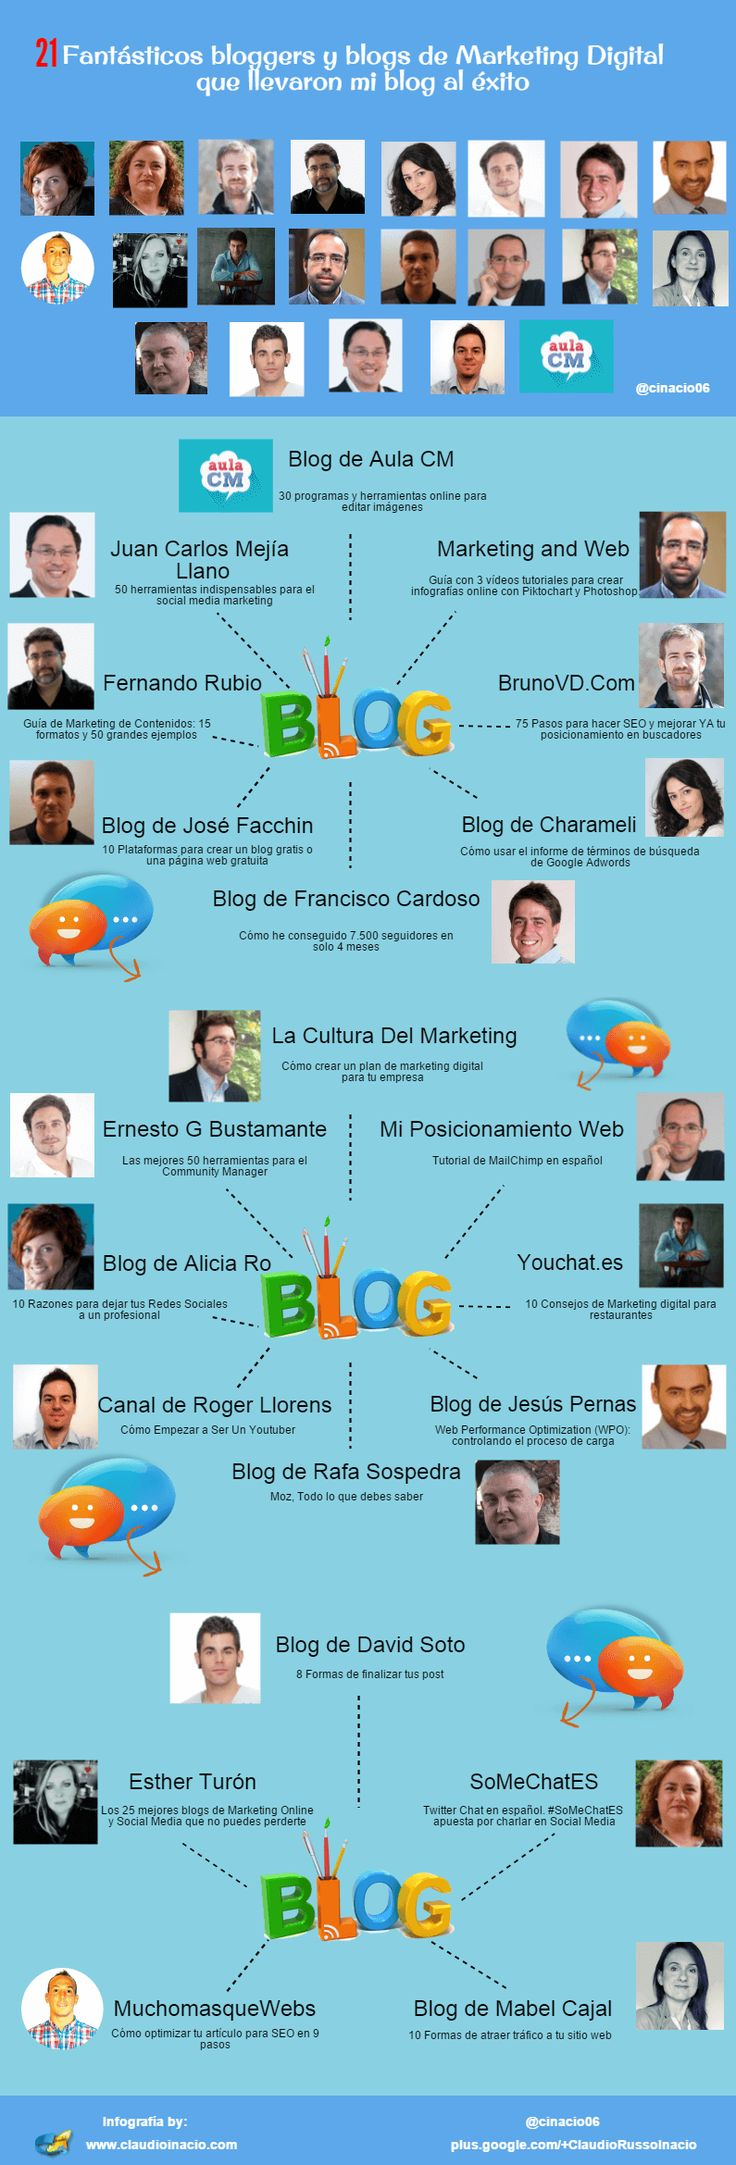 21 Fantásticos bloggers y blogs de Marketing Digital que llevaron mi blog al éxito. Infografía en español. #CommunityManager